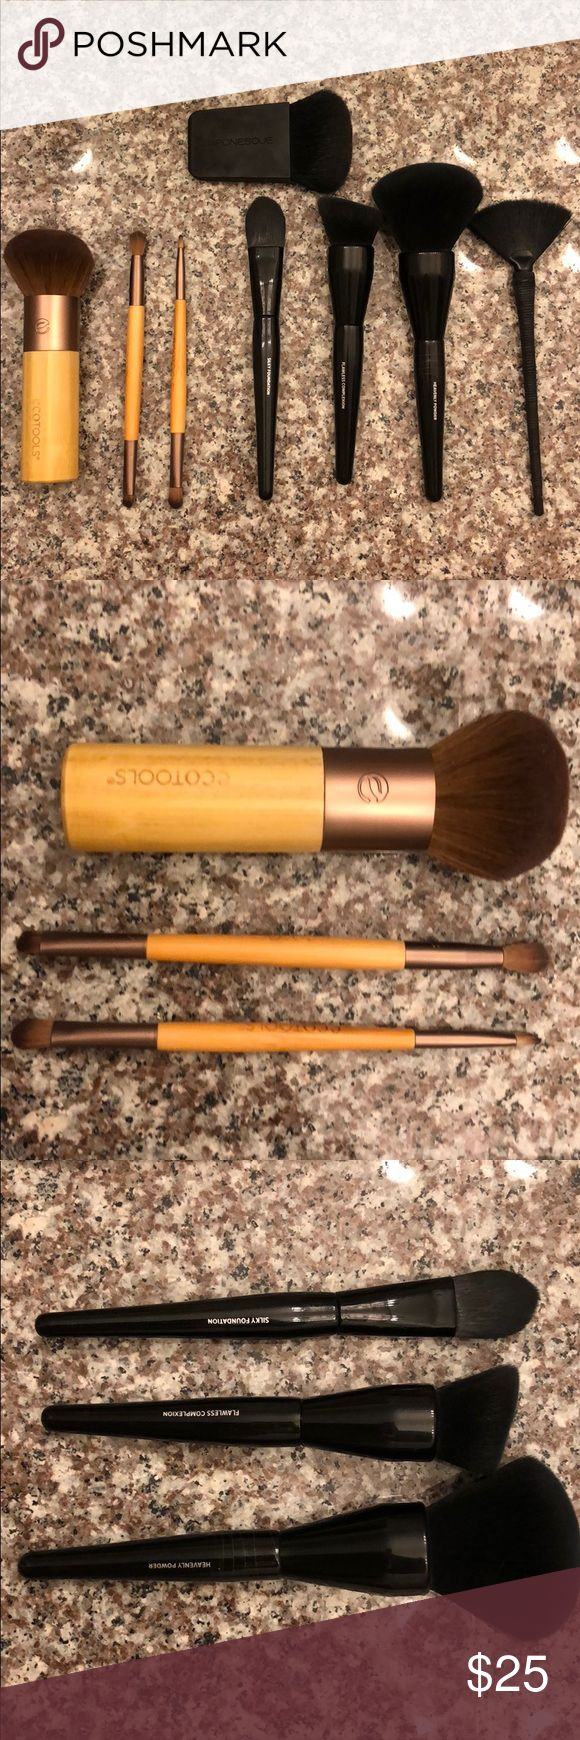 Makeup Brush Lot (8) Most new, some used but sanitized; no brush numbers on brushes three Ecotools brushes, three it for Ulta brushes (super soft), fan brush and contouring brush from Japonesque. I have about four go-to brushes and don't need any extras, your gain! Ulta Makeup Brushes & Tools